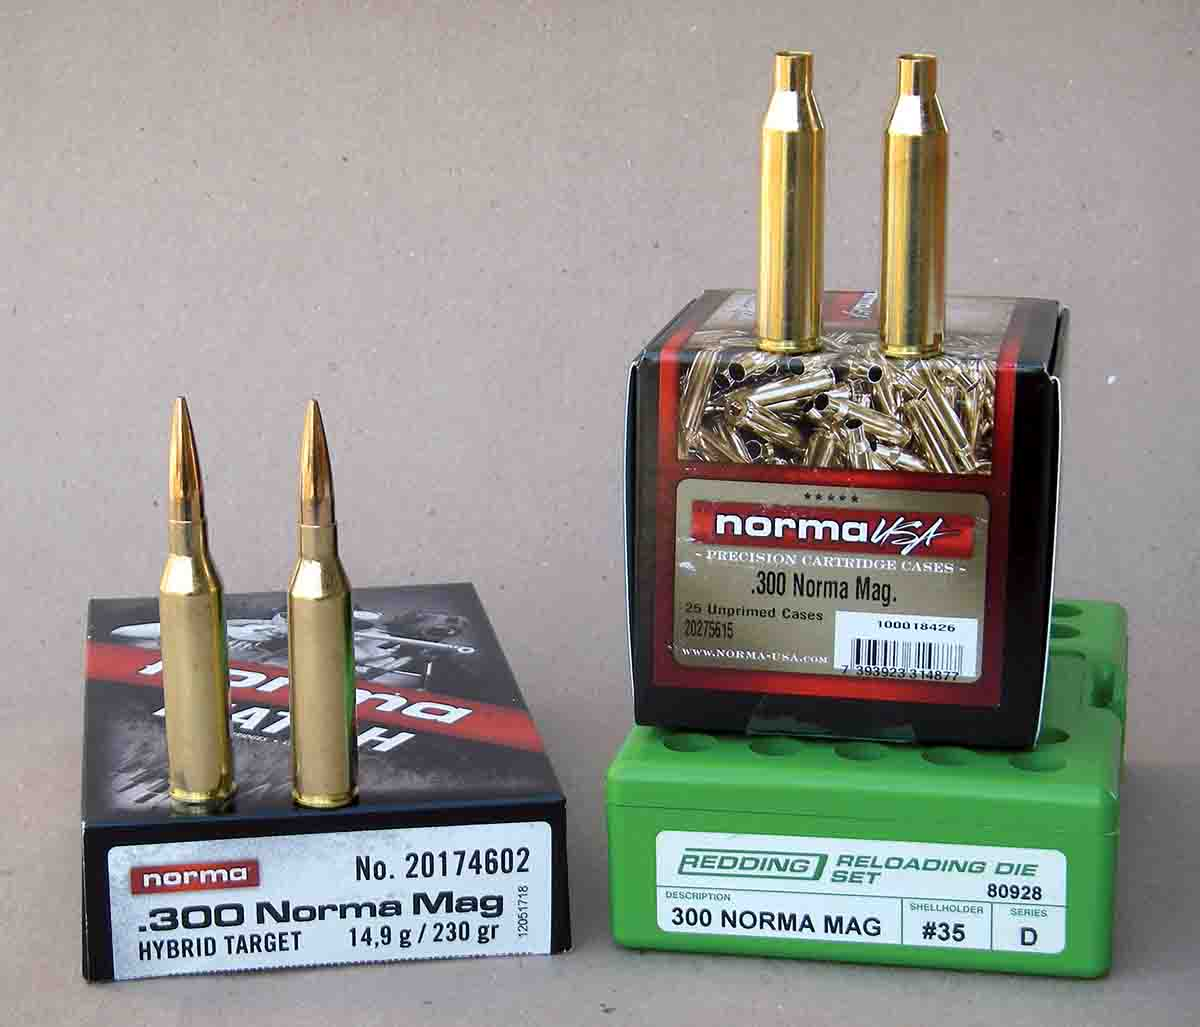 In addition to factory ammunition, Norma offers excellent unprimed cases for handloaders, and Redding offers dies.